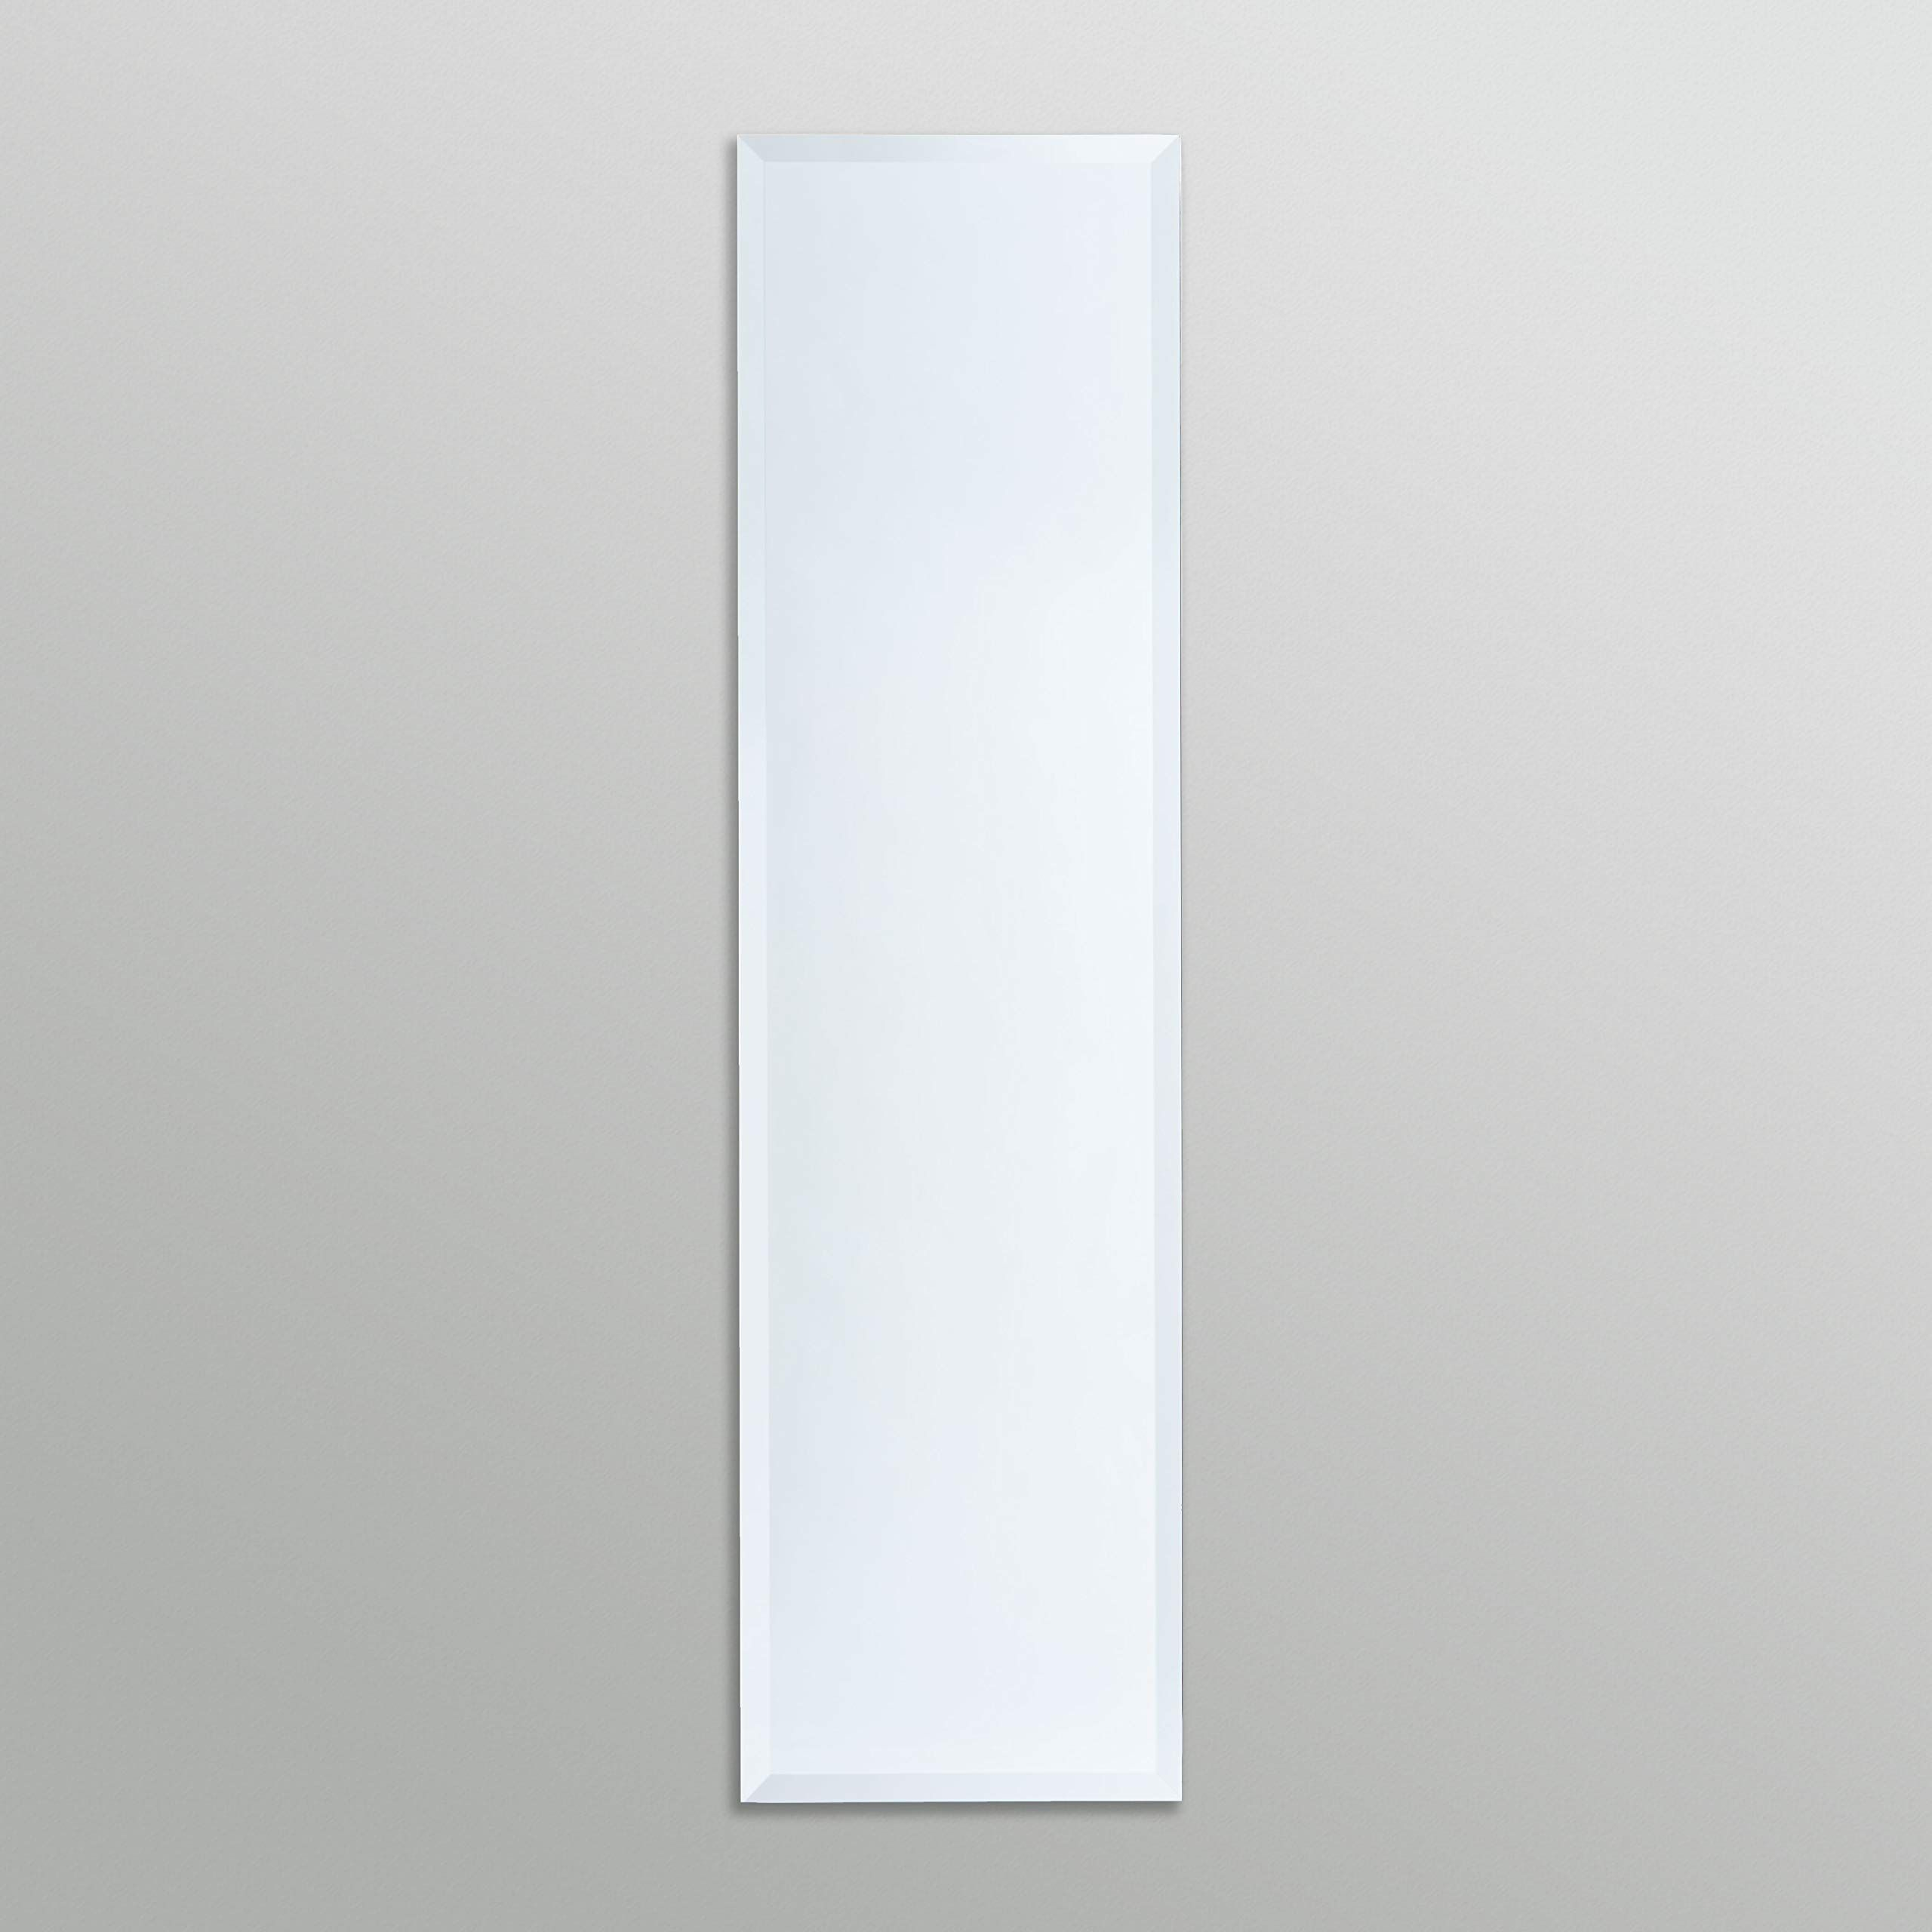 Classic Design This Simple Yet Sophisticated Full Length Beveled Rectangle Wall Mirror Is A Highly Versatile Design Measu Mirror Wall Mirror Rectangle Mirror